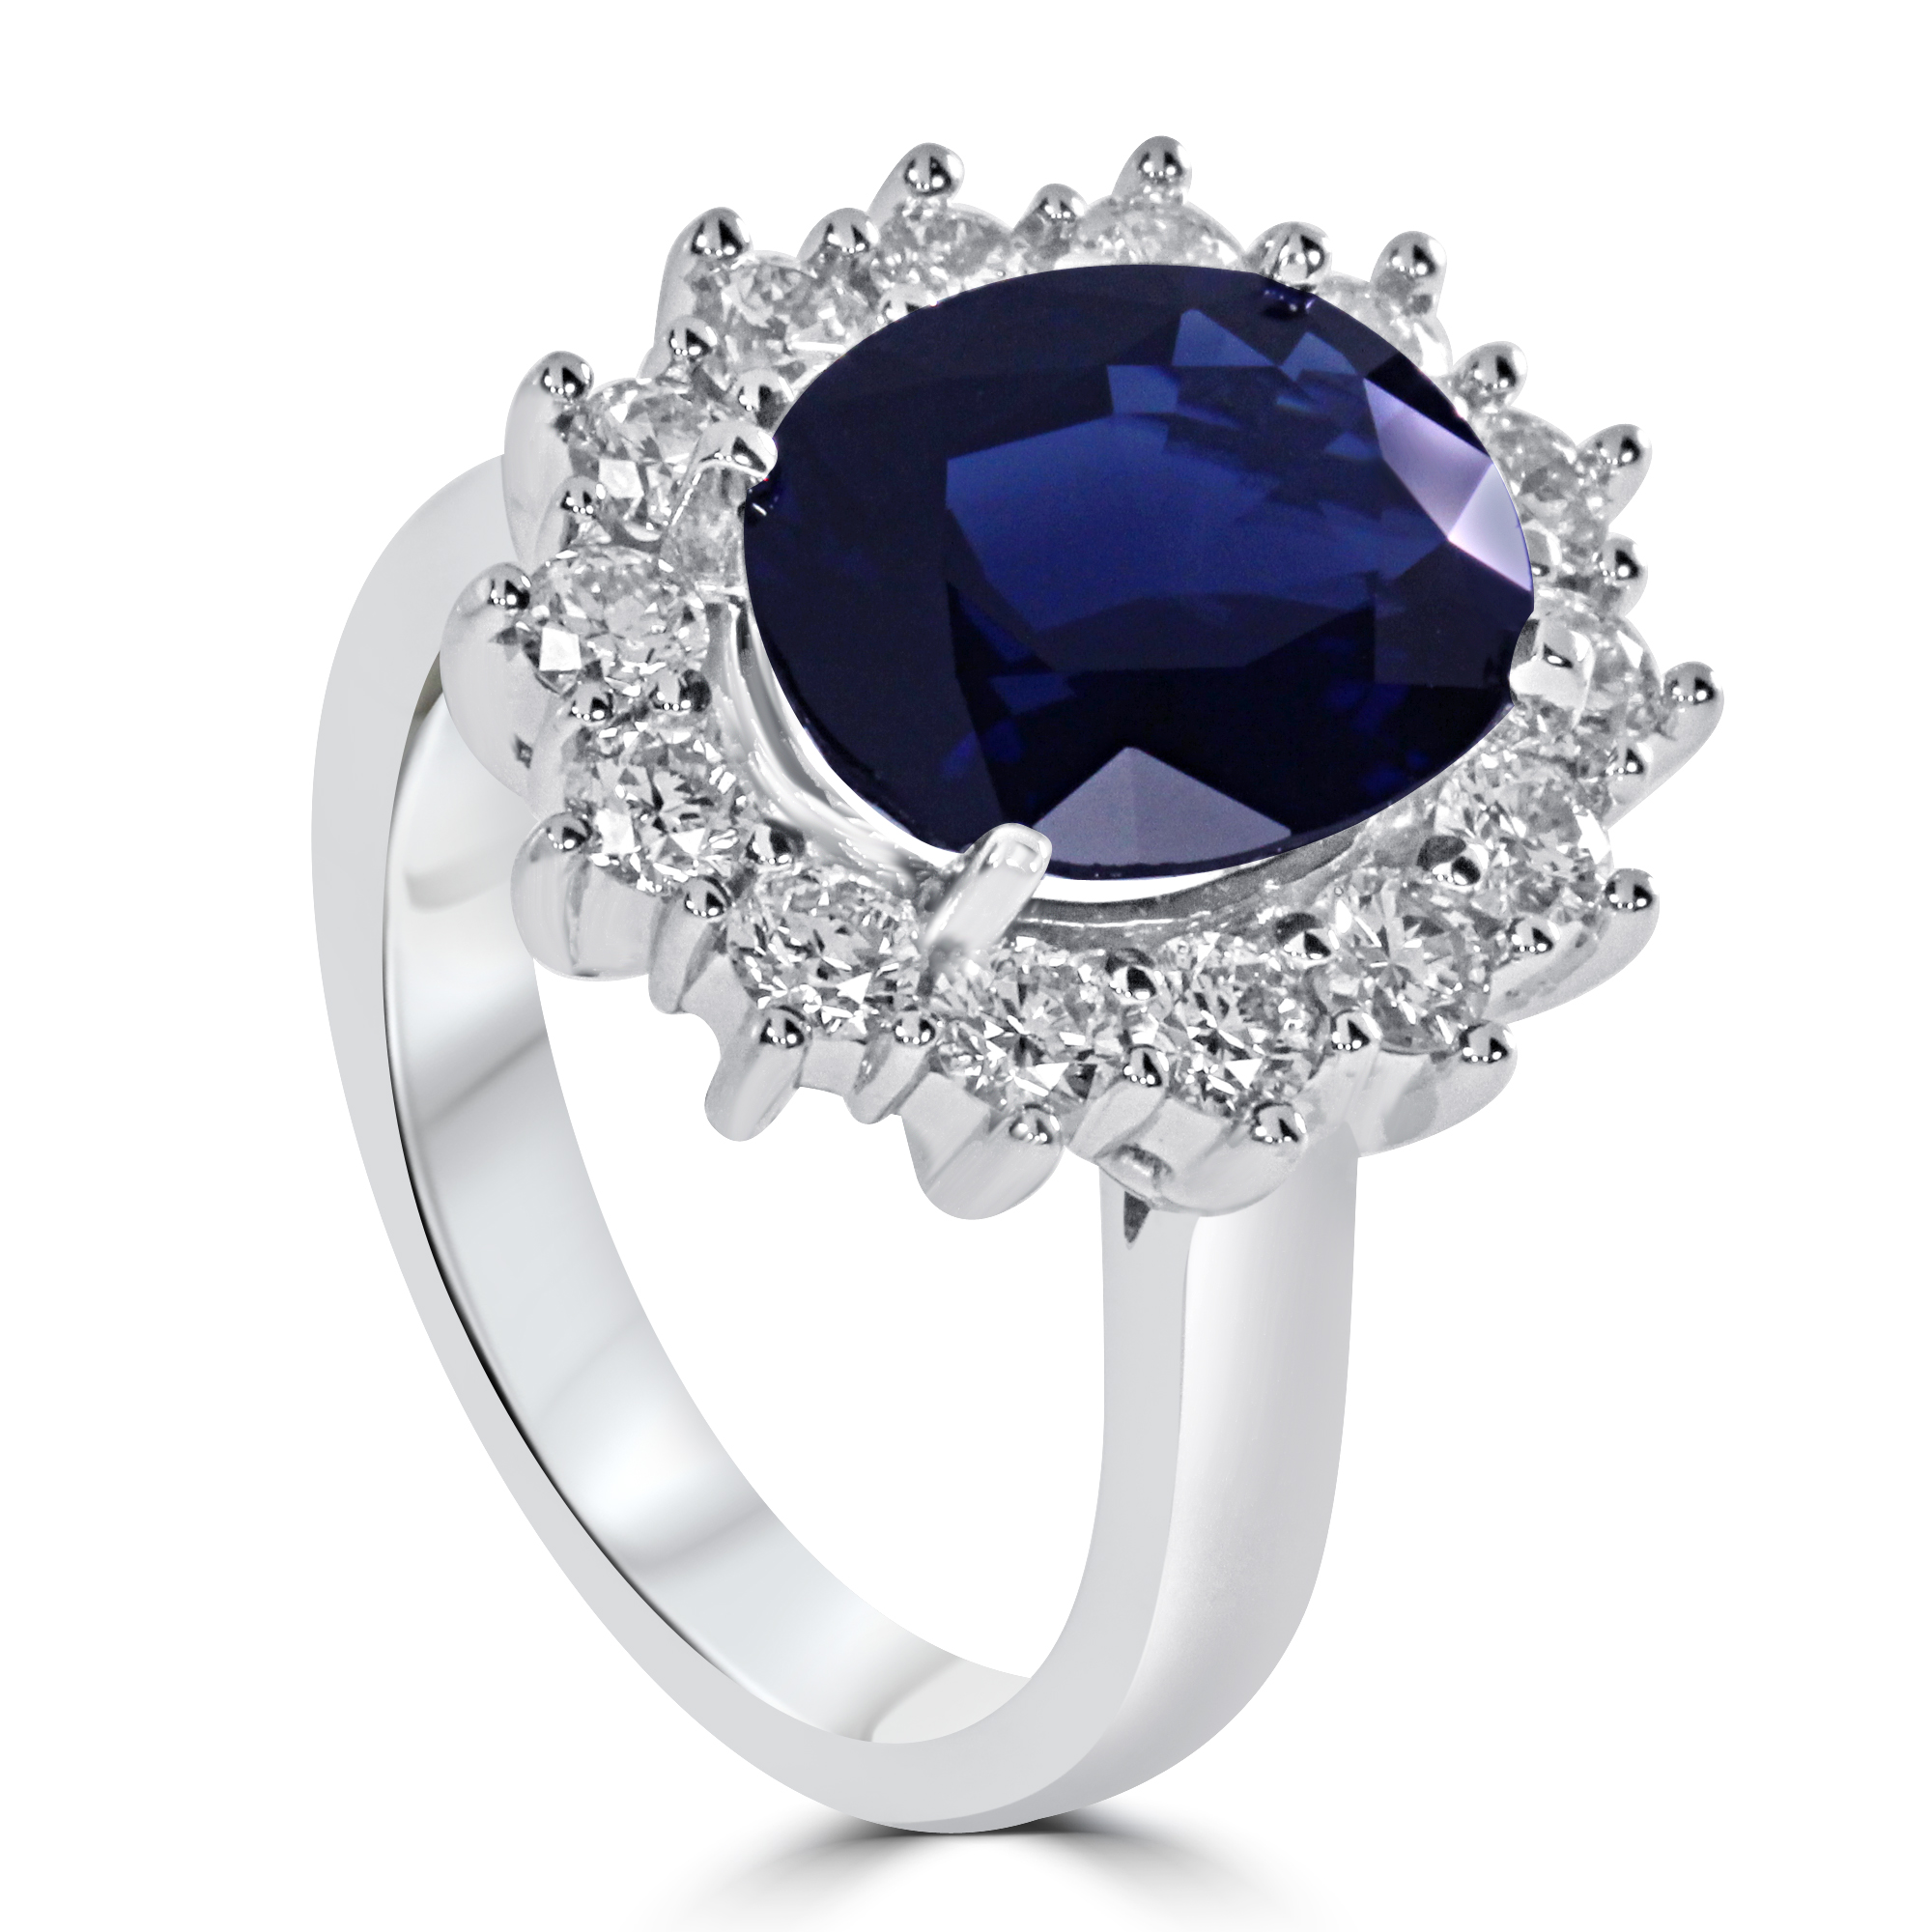 Sapphire And Diamond Enement Rings | 14k White Gold Oval Sapphire Diamond Halo Engagement Ring Abc Jewelry